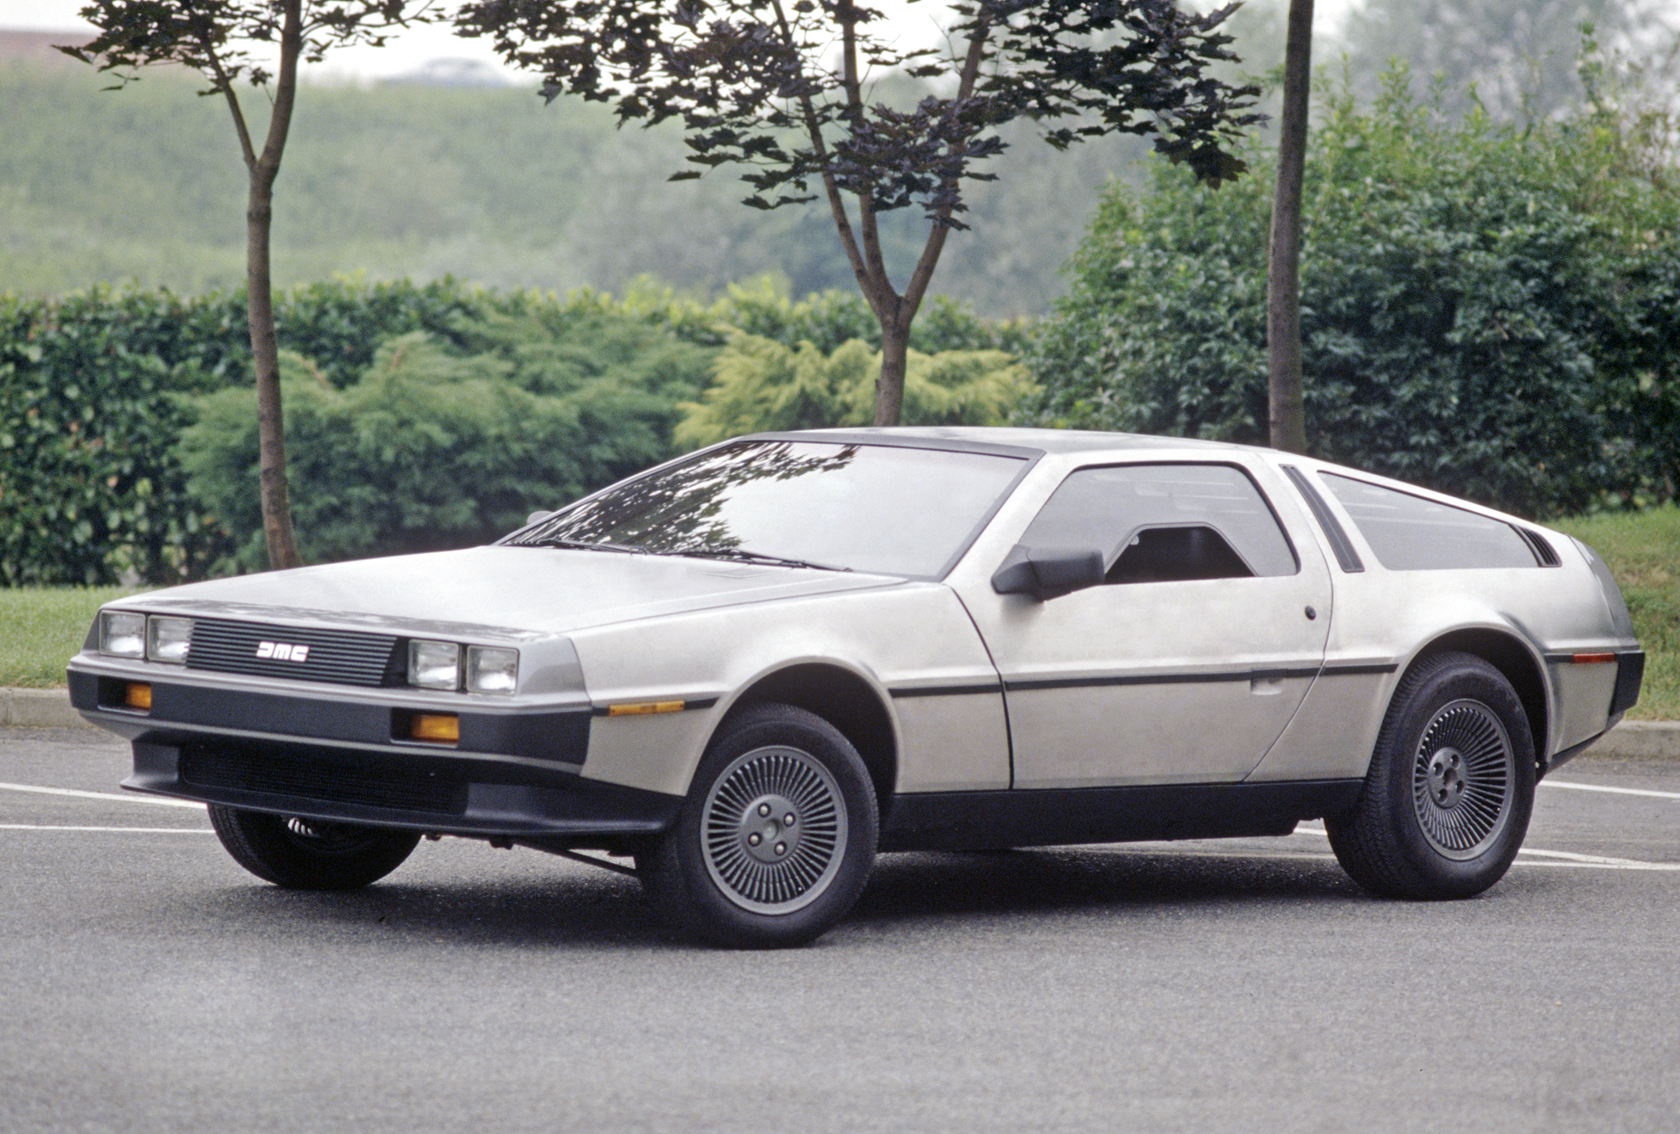 DeLorean DMC-12, Foto: Italdesign